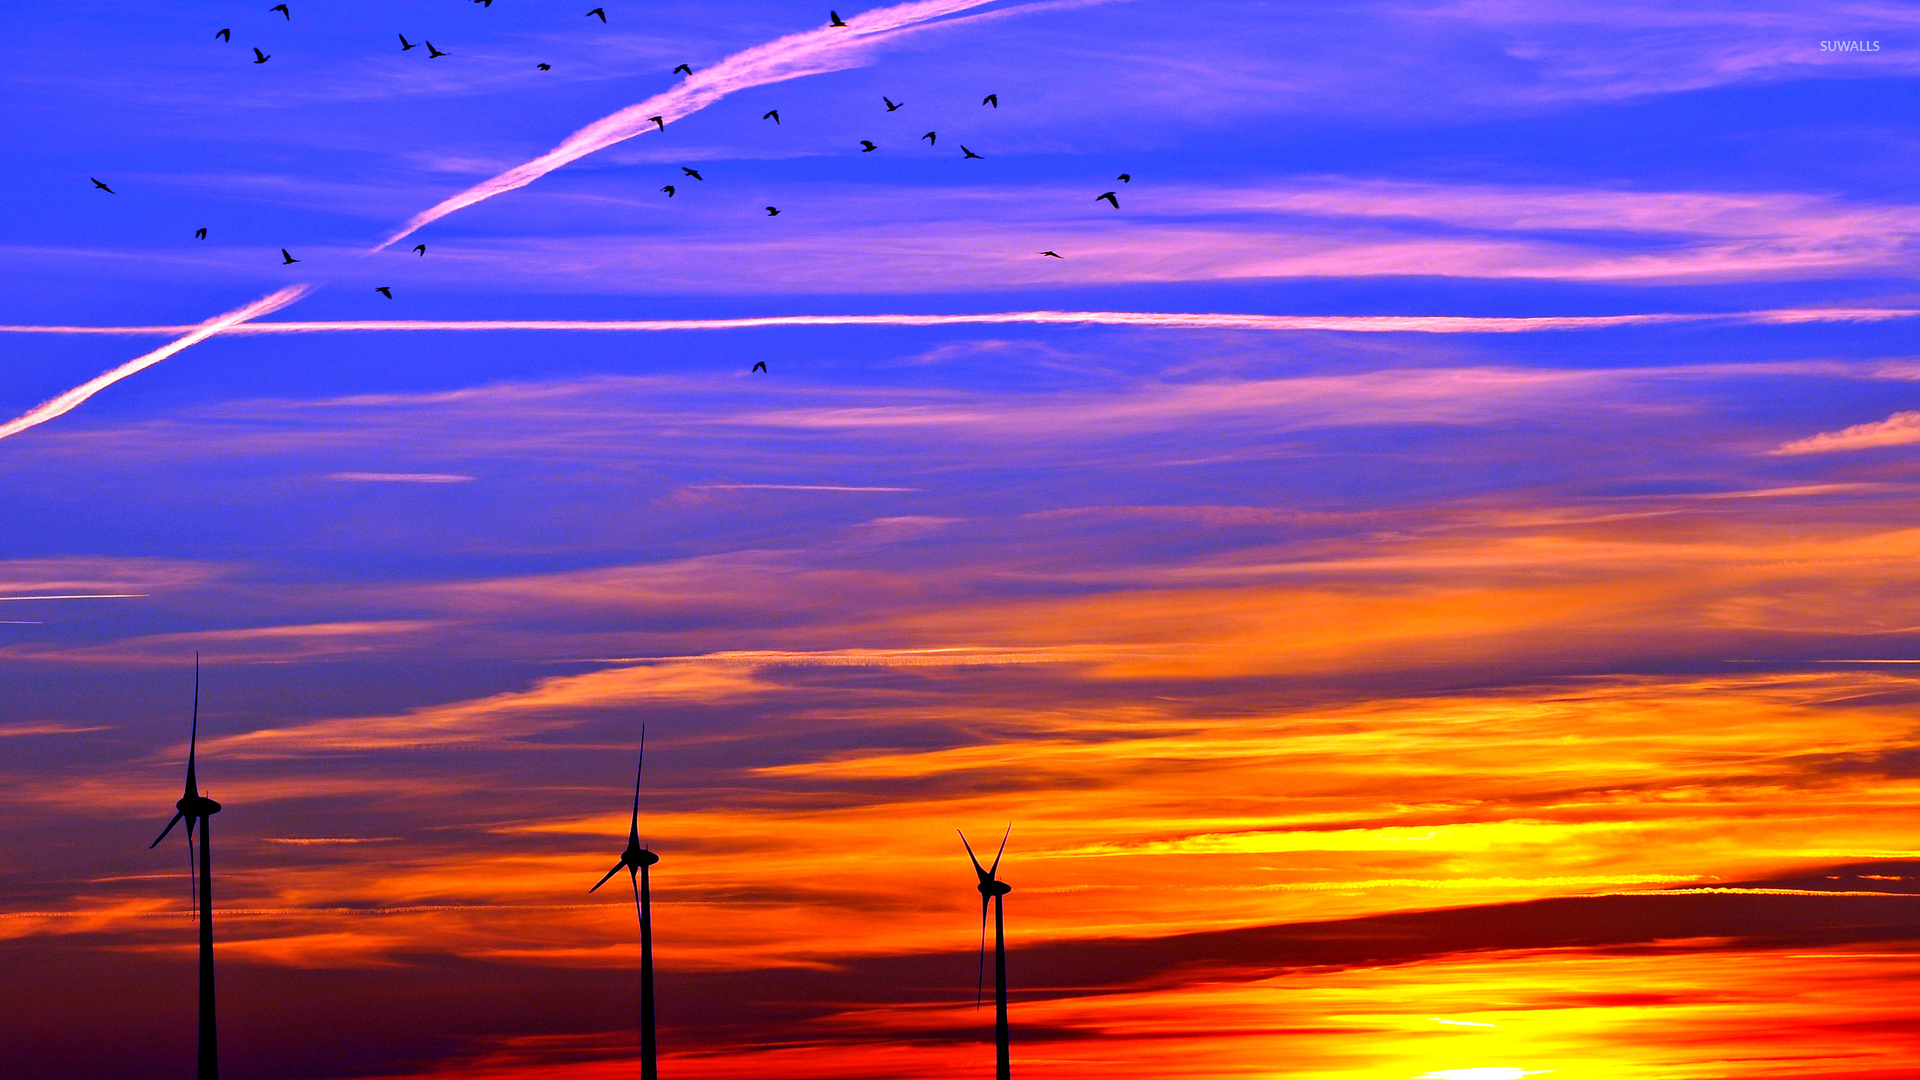 Pretty Fall Desktop Wallpaper Colorful Sunset Over The Wind Turbines Wallpaper